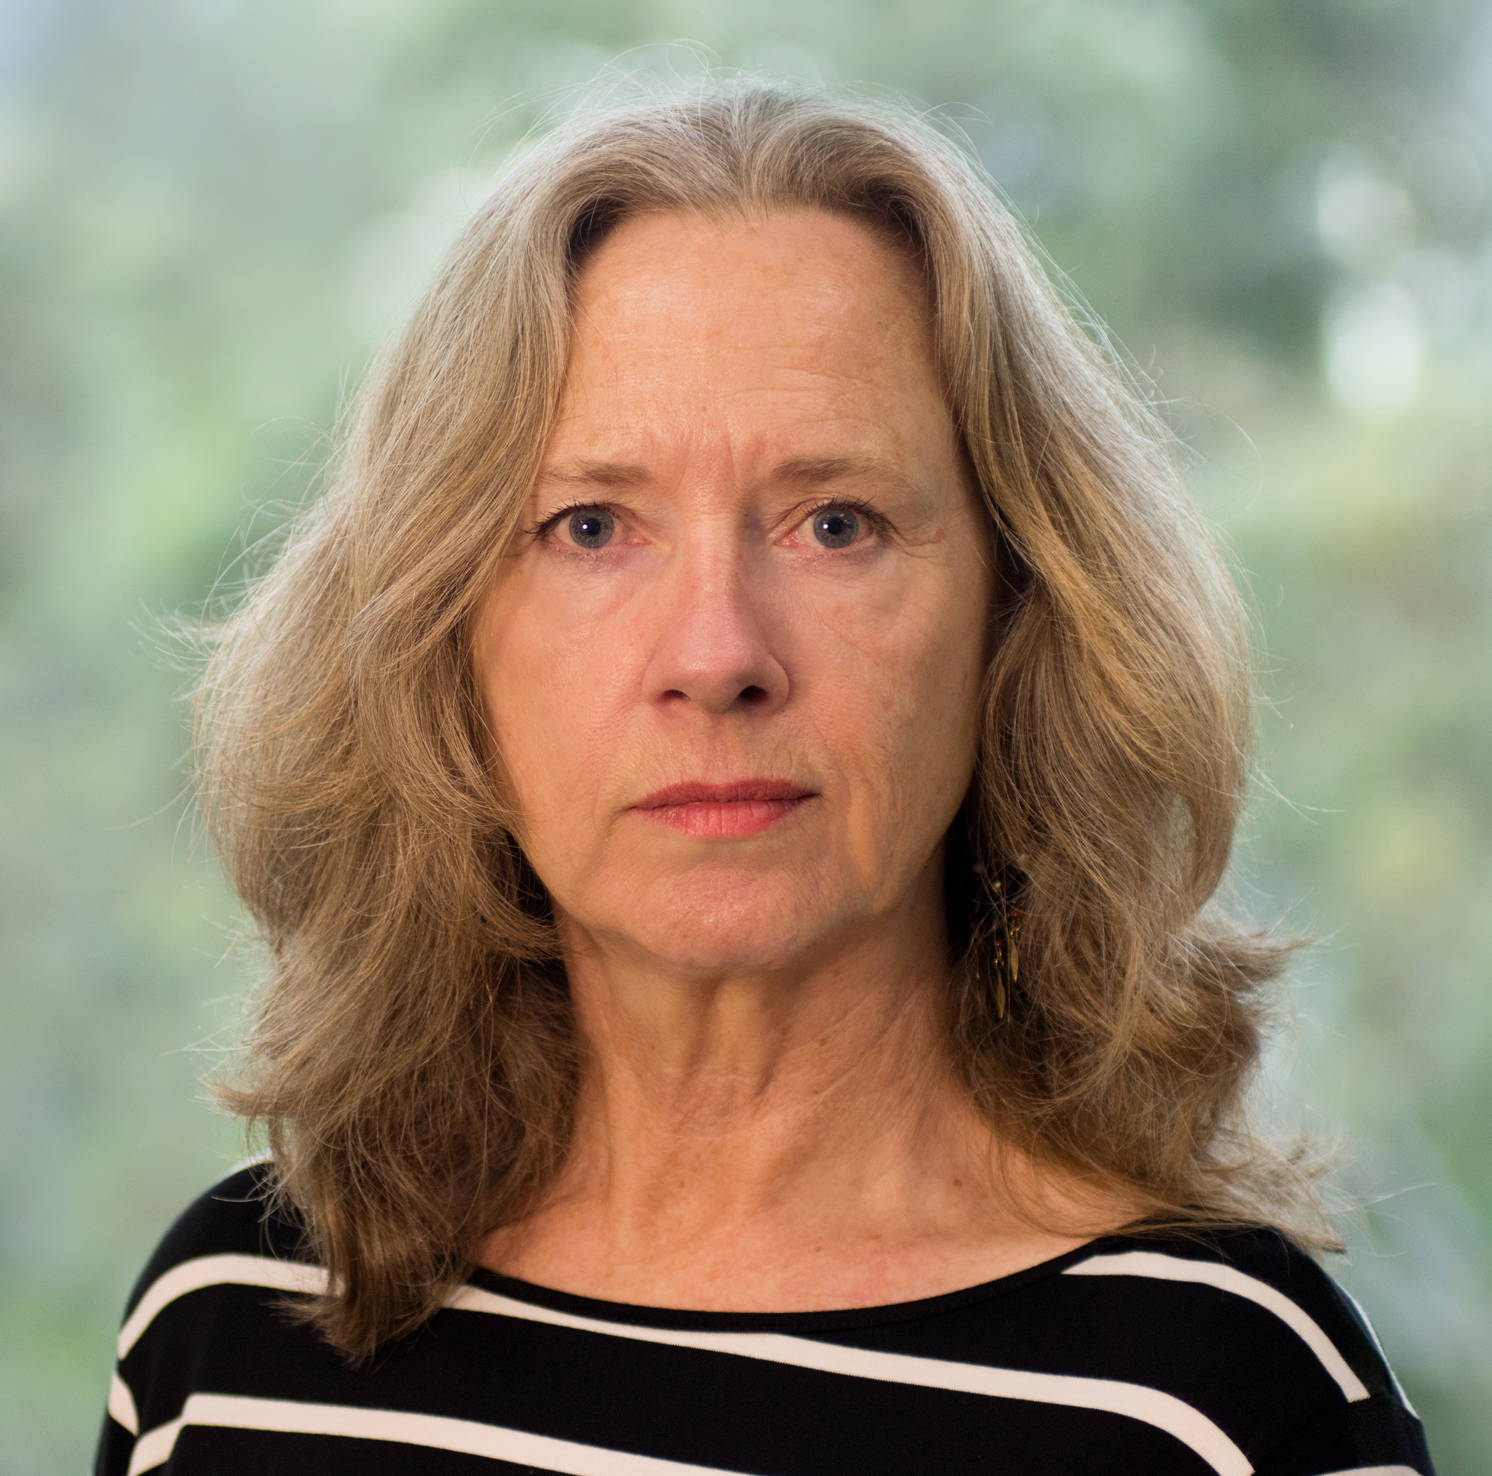 Profile photo of Rosemary O'Donnell